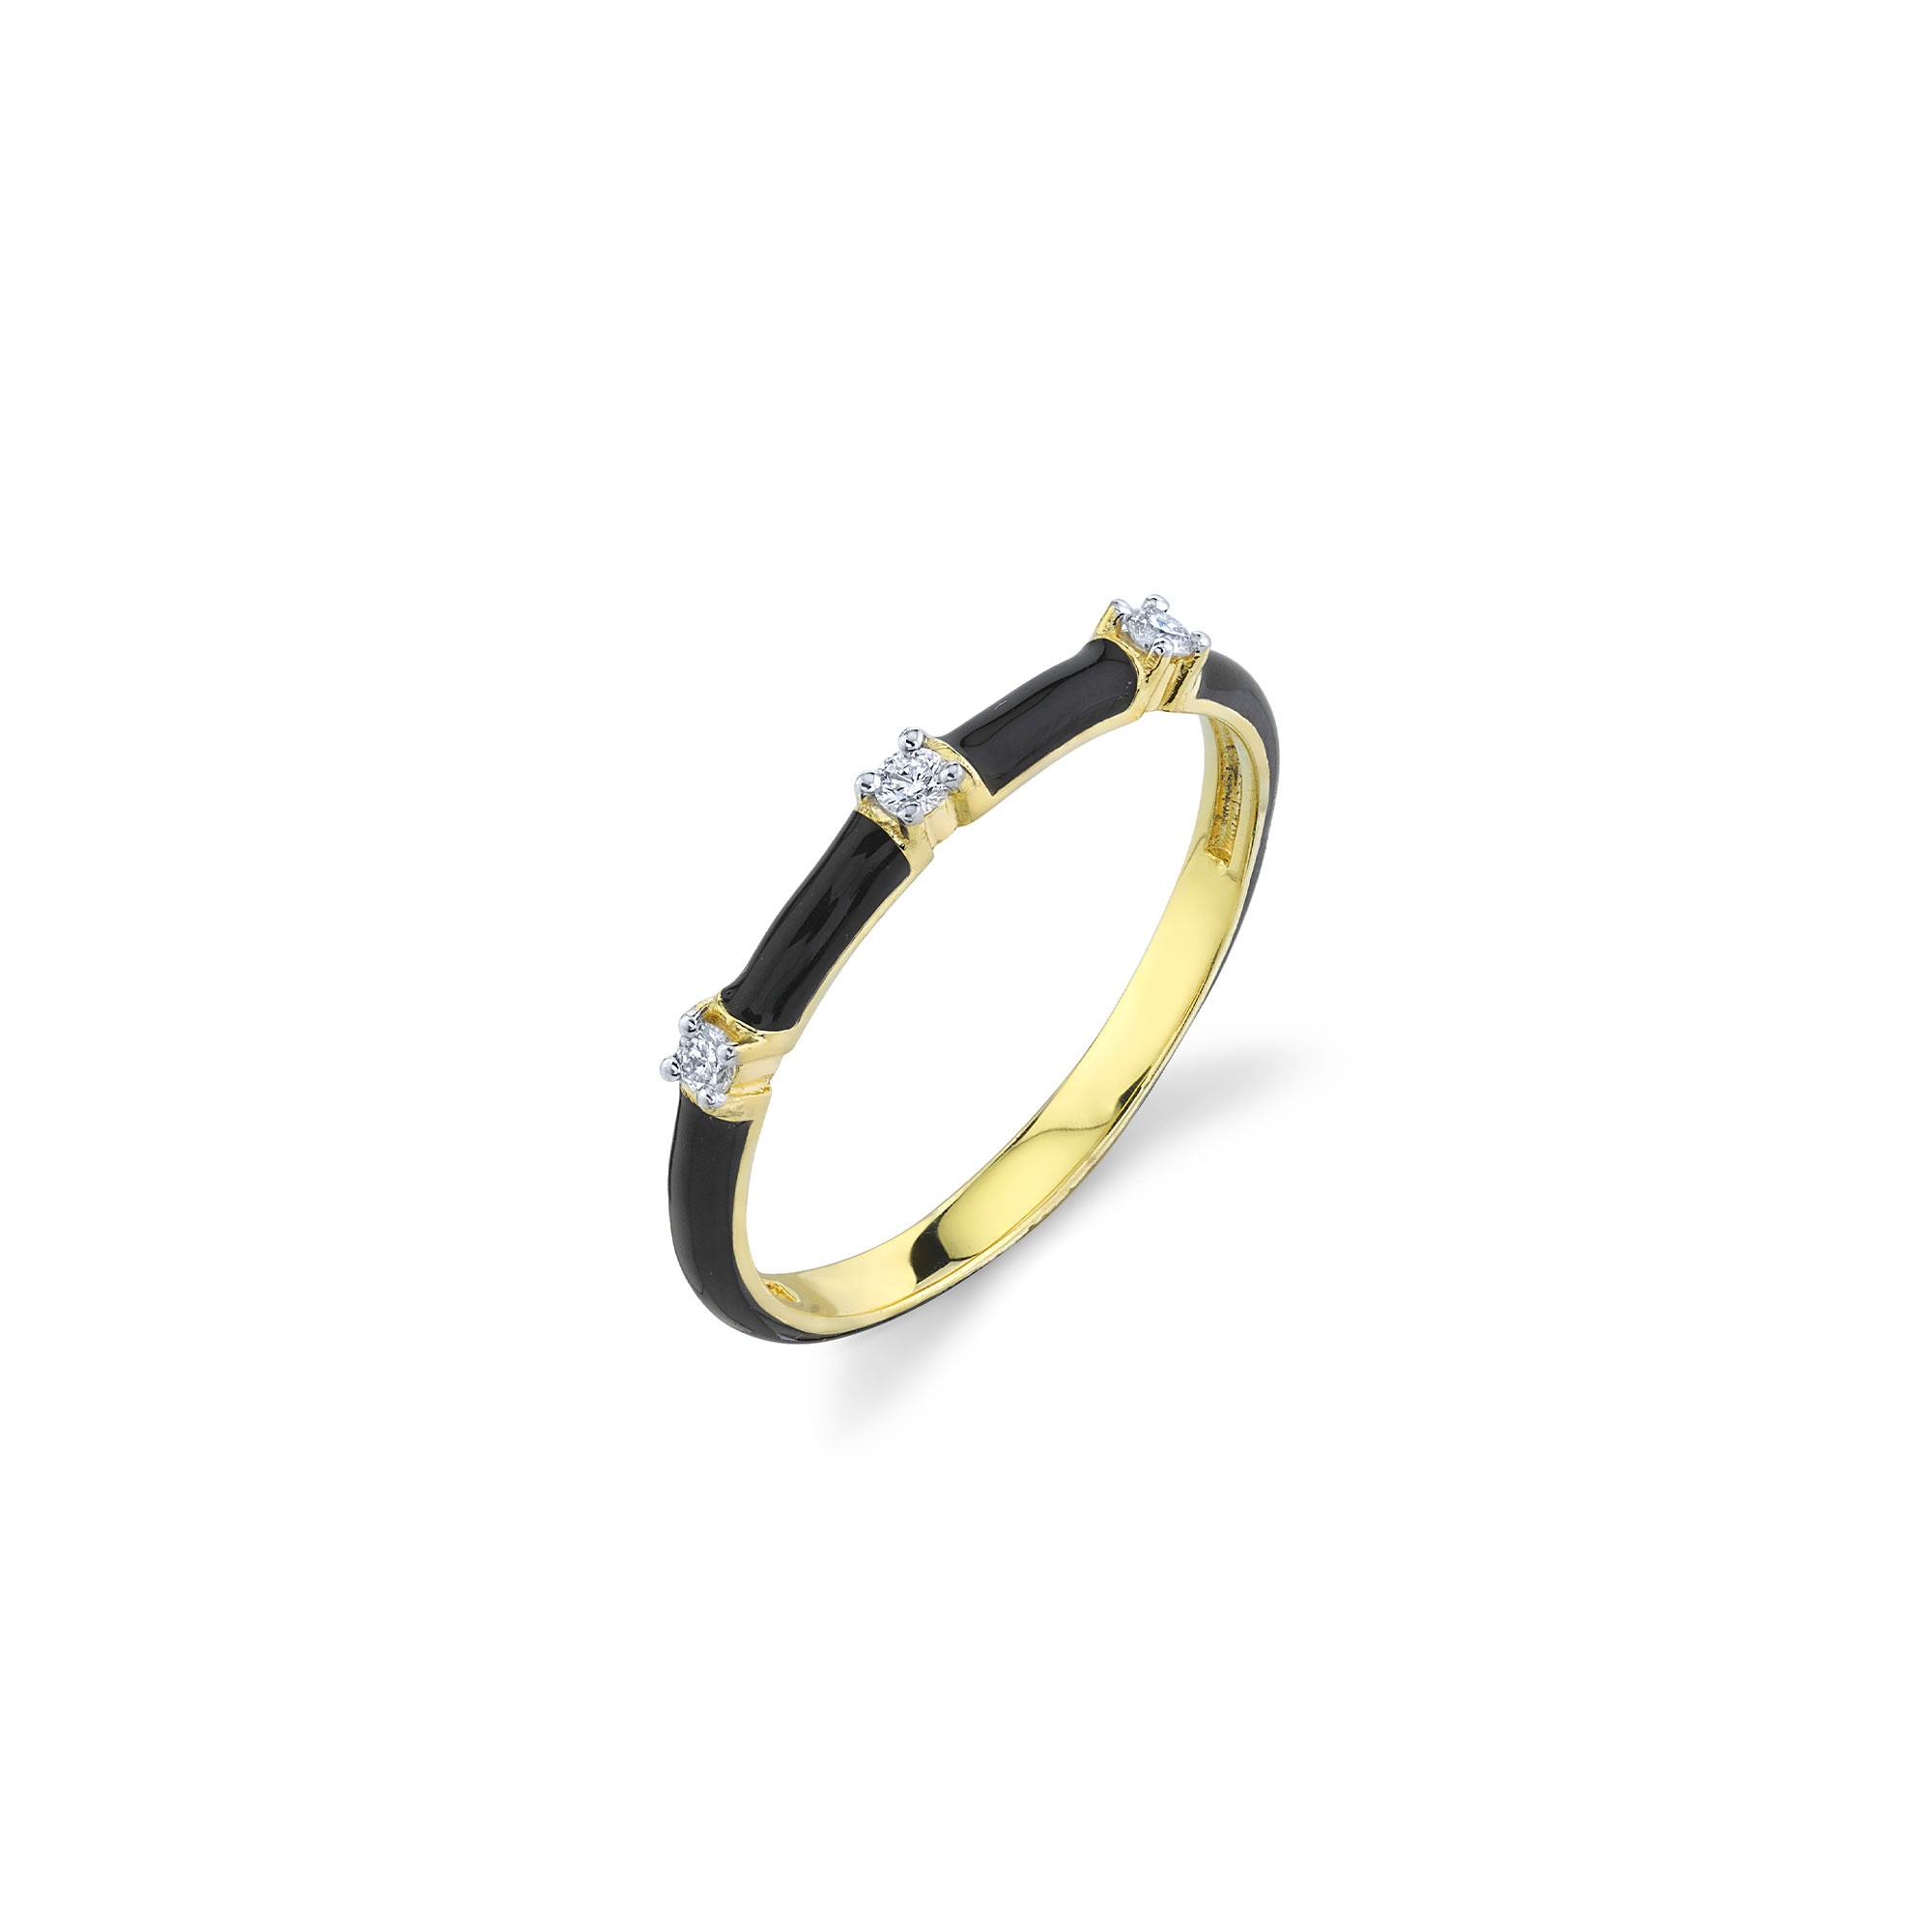 Sloane Street 18K Yellow Gold .07cts  Diamonds Gold Ring with Stones R014G-BKE-WDCB-Y-7